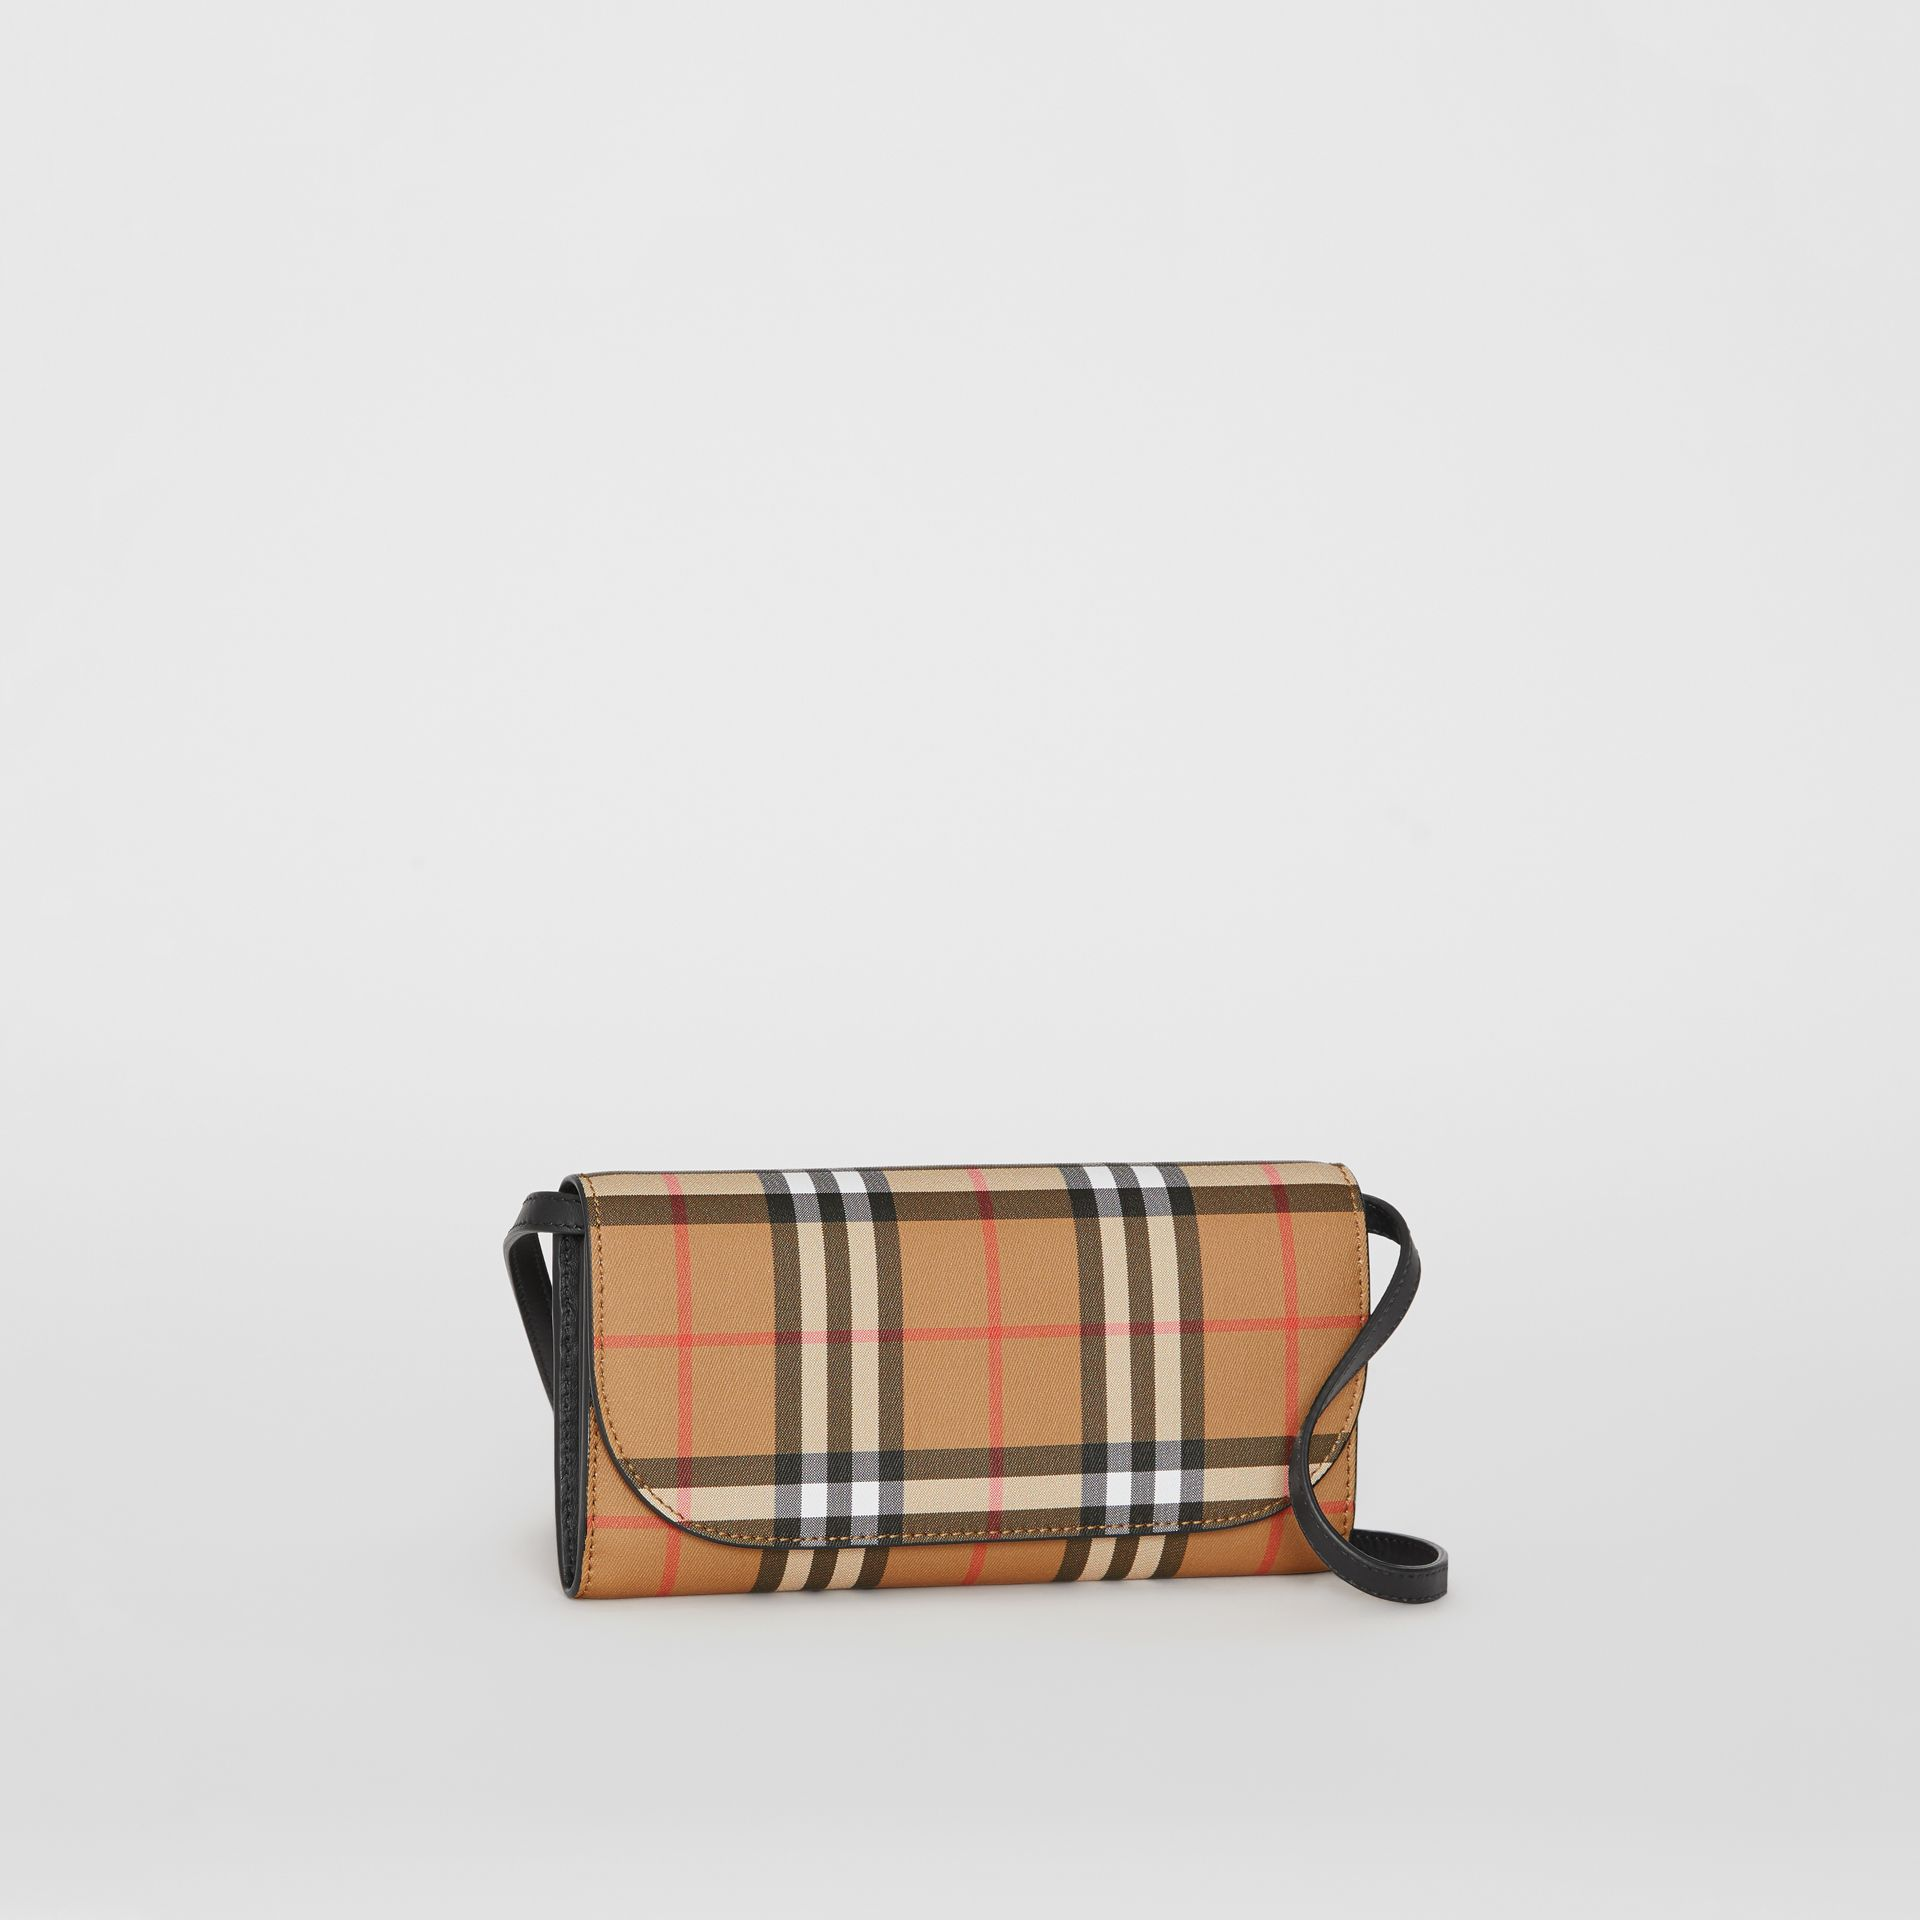 Detachable Strap Vintage Check Leather Wallet in Black - Women | Burberry Hong Kong - gallery image 6